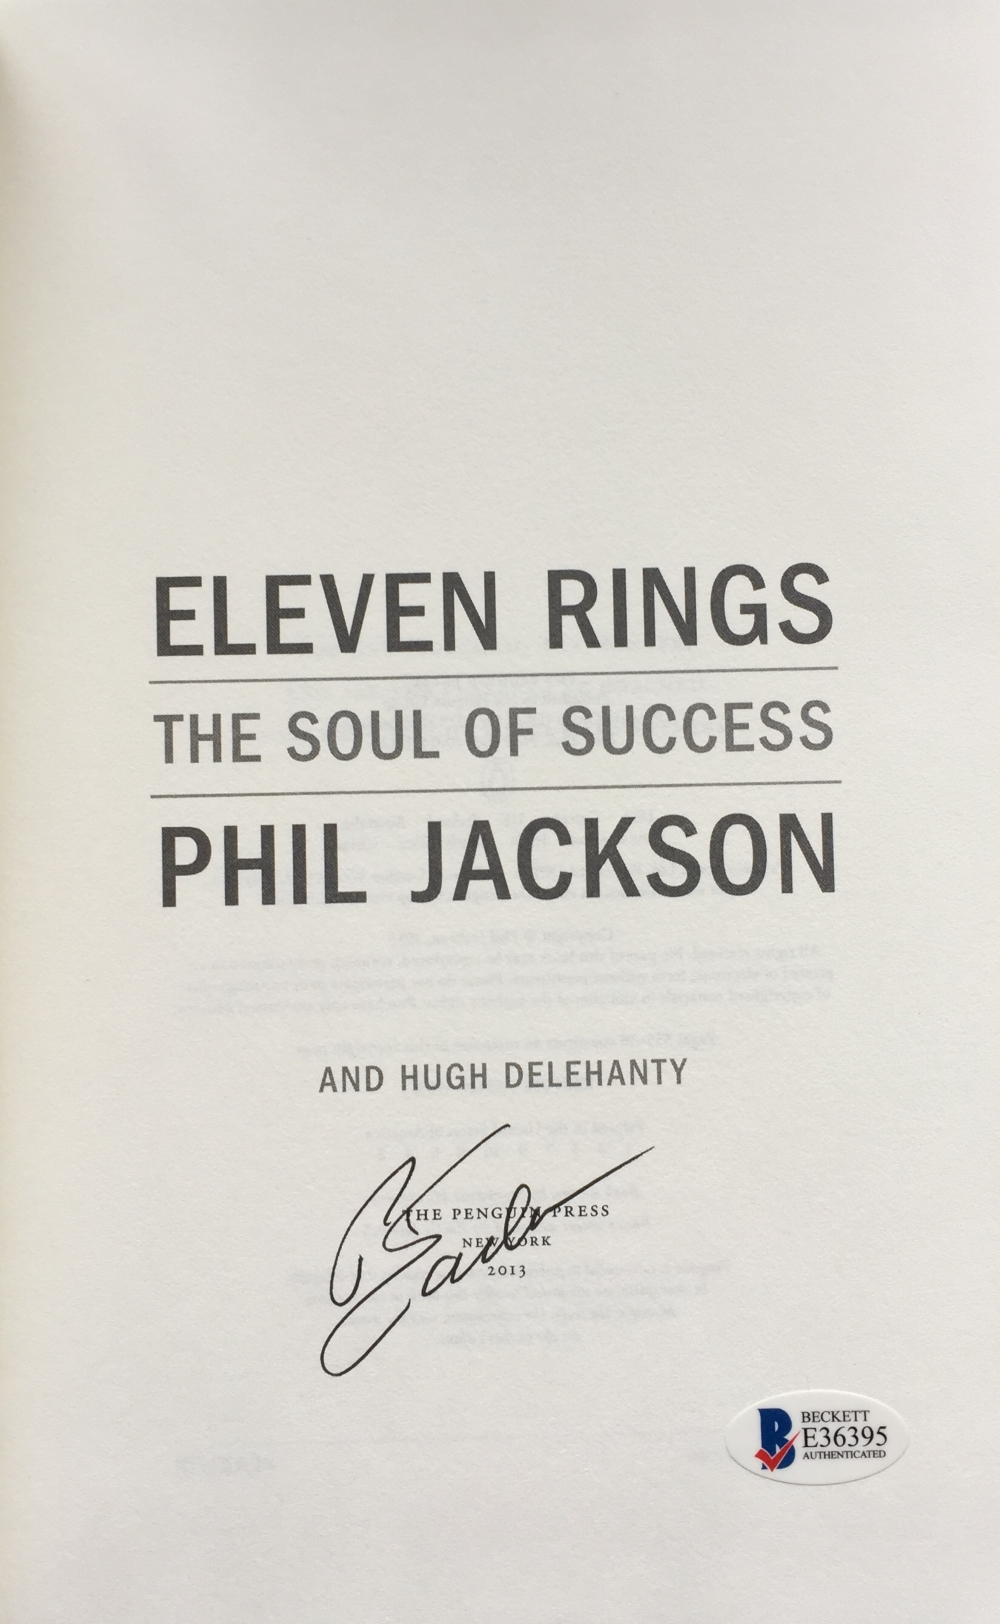 Phil Jackson Signed Eleven Rings: The Soul of Success Book BAS